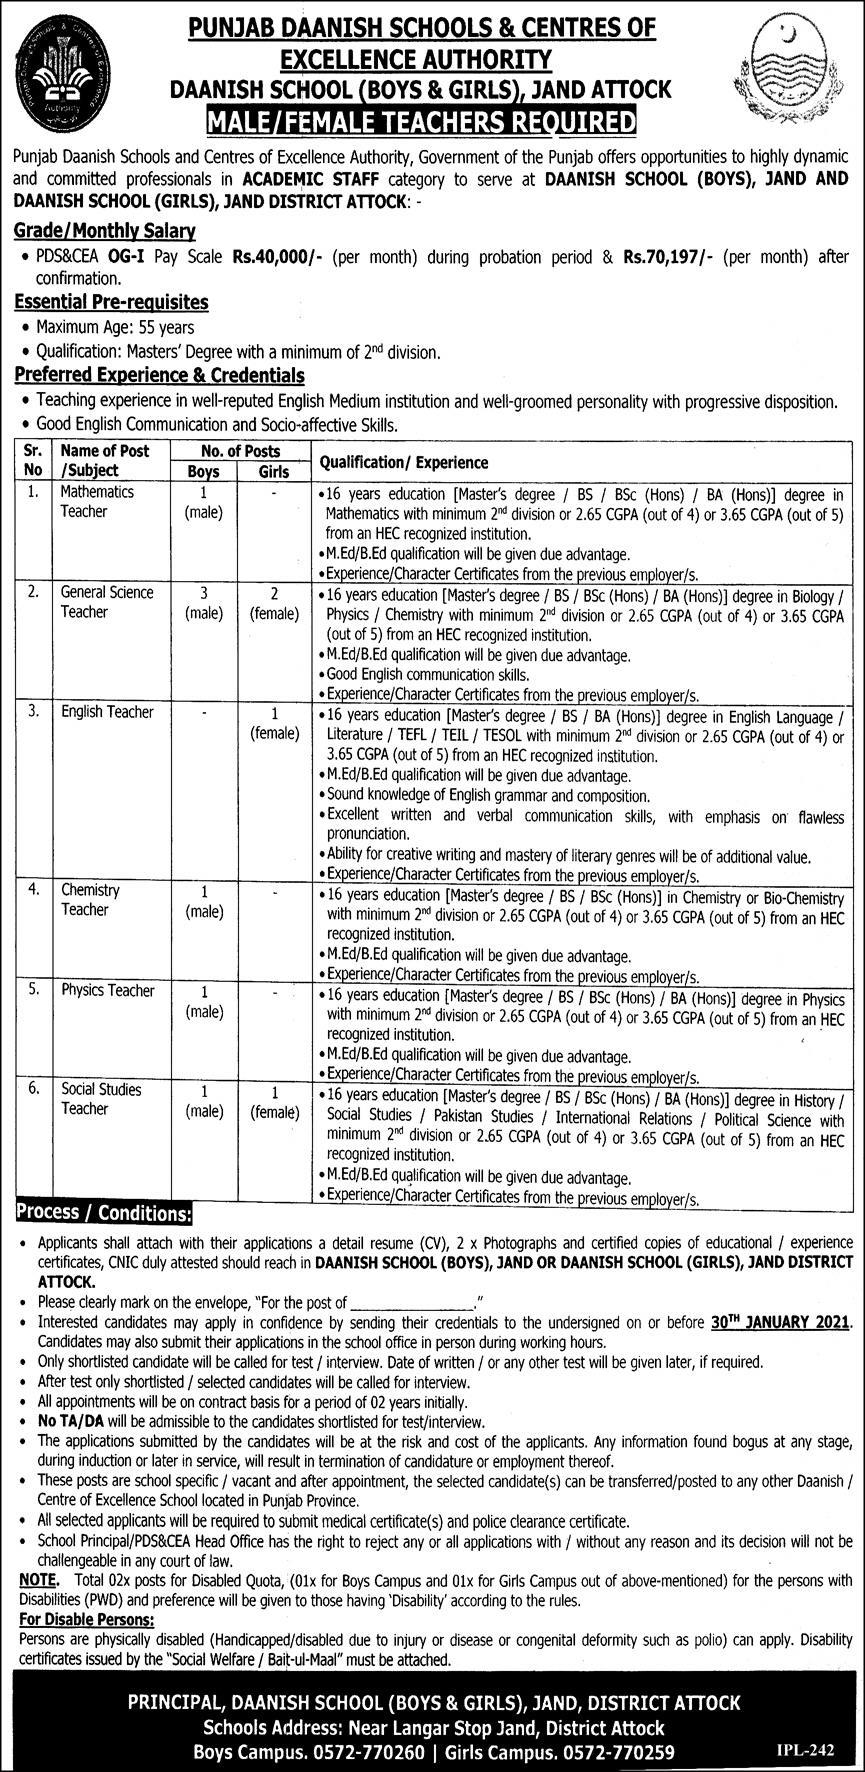 Mathematics Teacher Jobs in Punjab Daanish Schools and Centres of Excellence Authority 17 Jan 2021